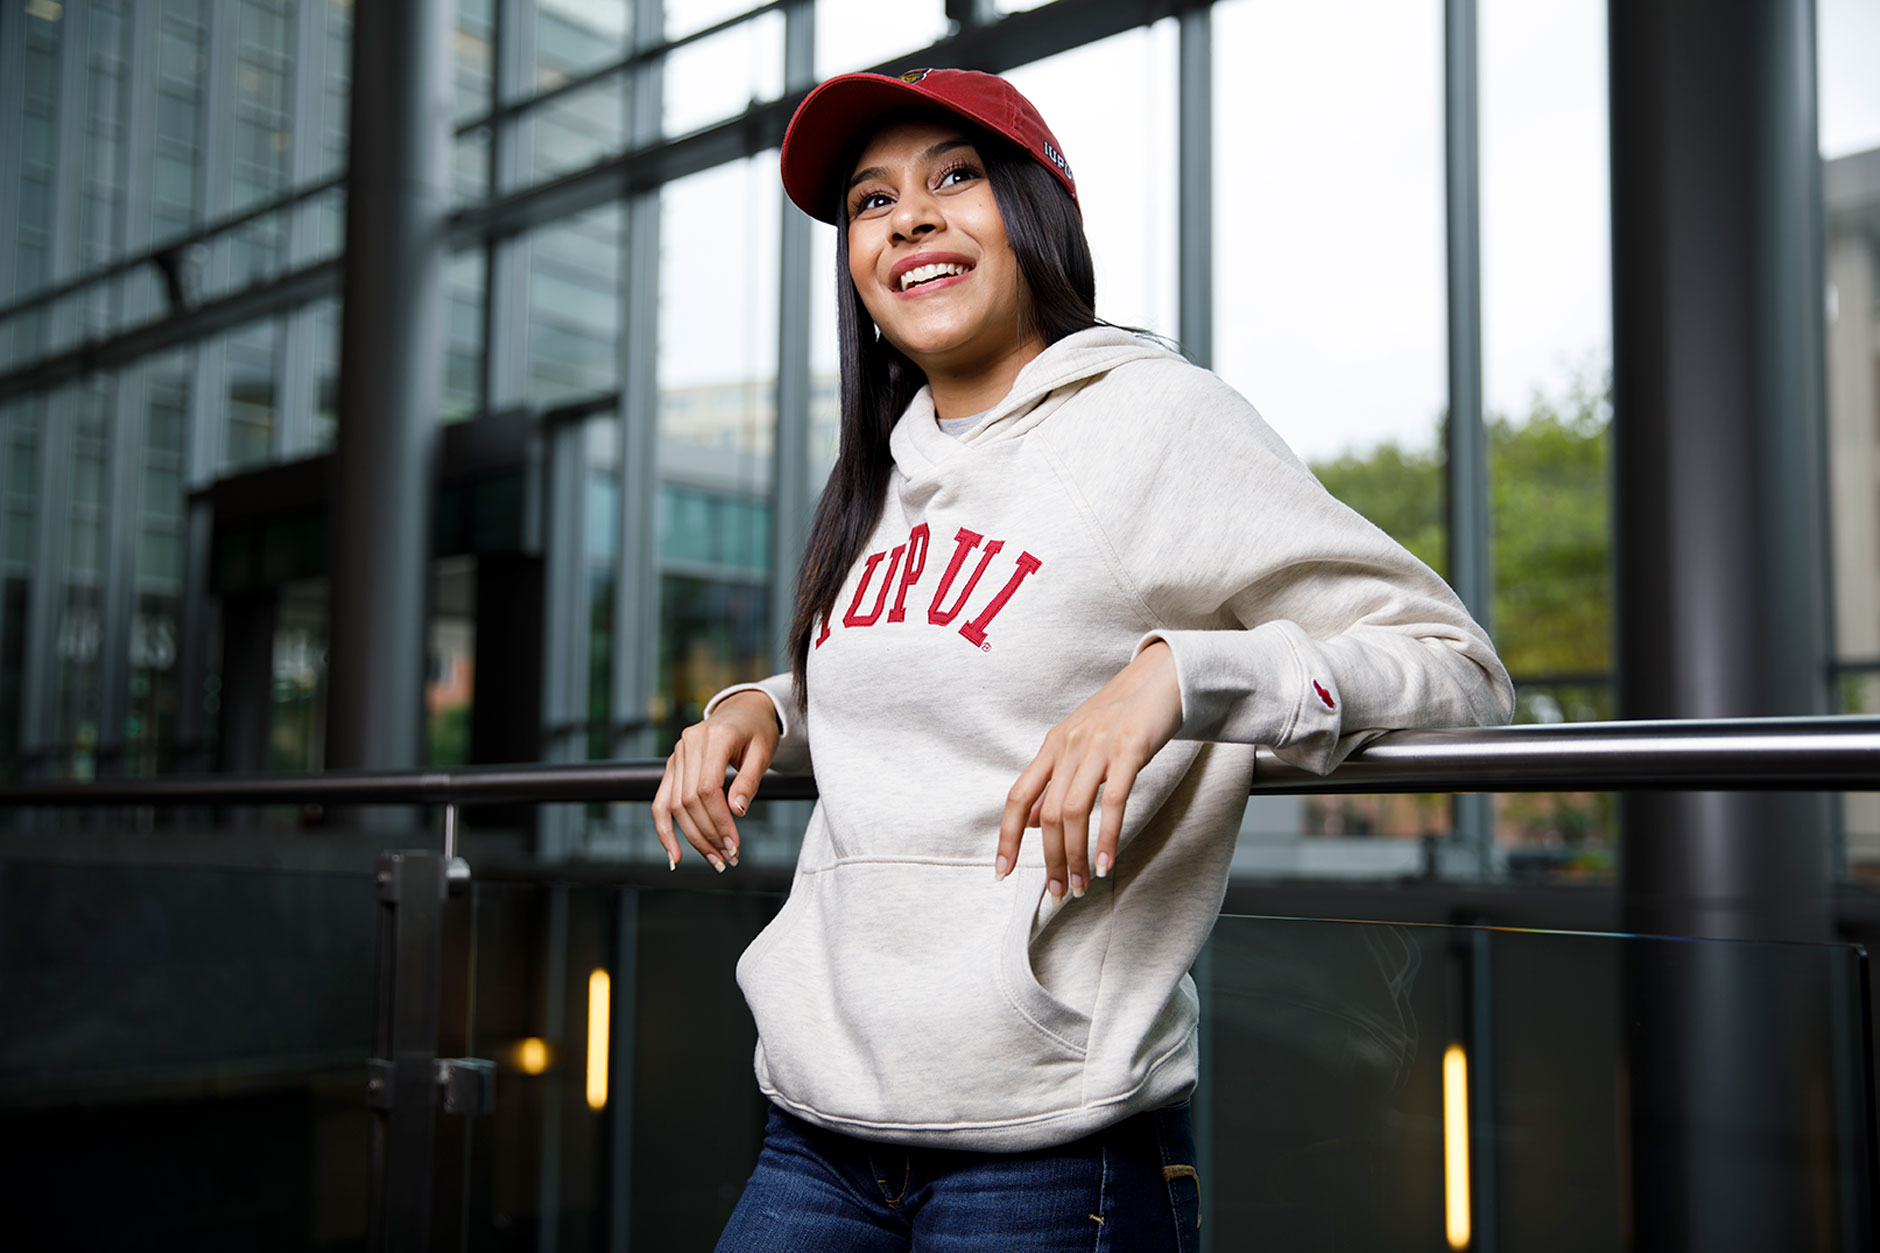 IUPUI student Naeema Patel poses for a portrait during a IUPUI apparel fashion photo shoot at the Campus Center on Wednesday, Aug. 8, 2018.